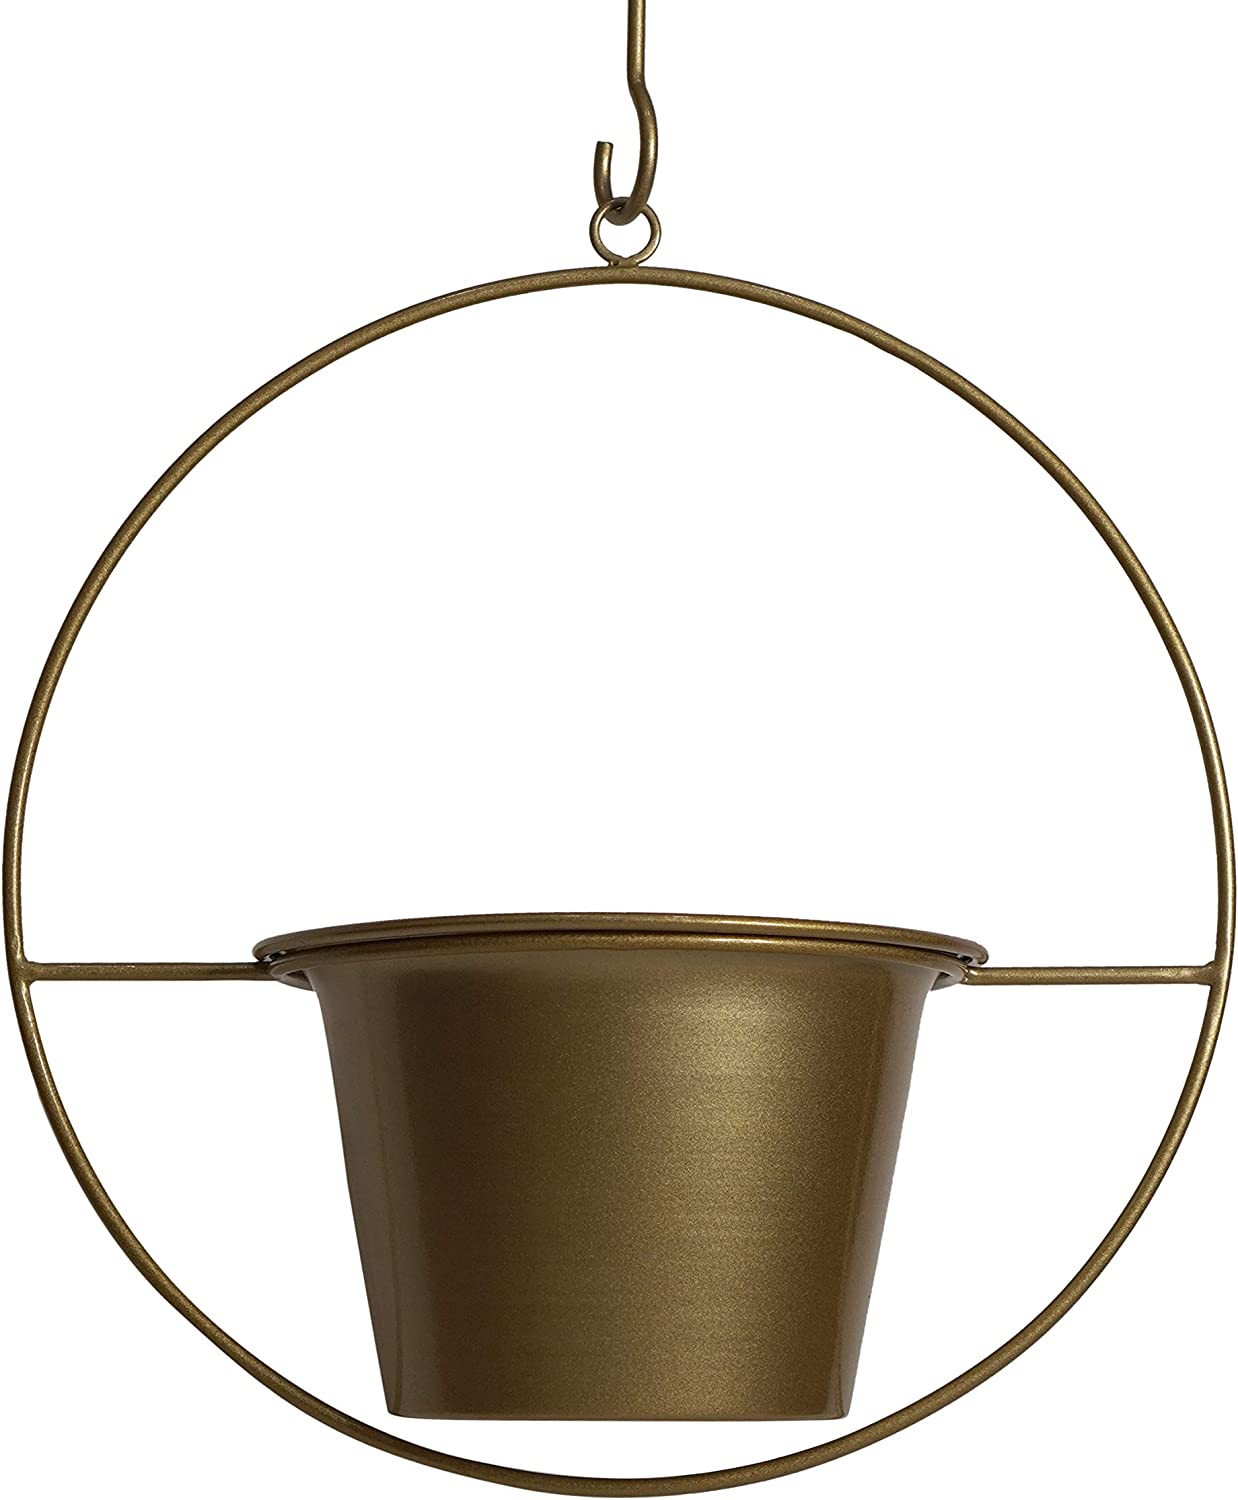 Ethereal Ore Max 80% OFF 6 Inch List price Gold Hanging Planter